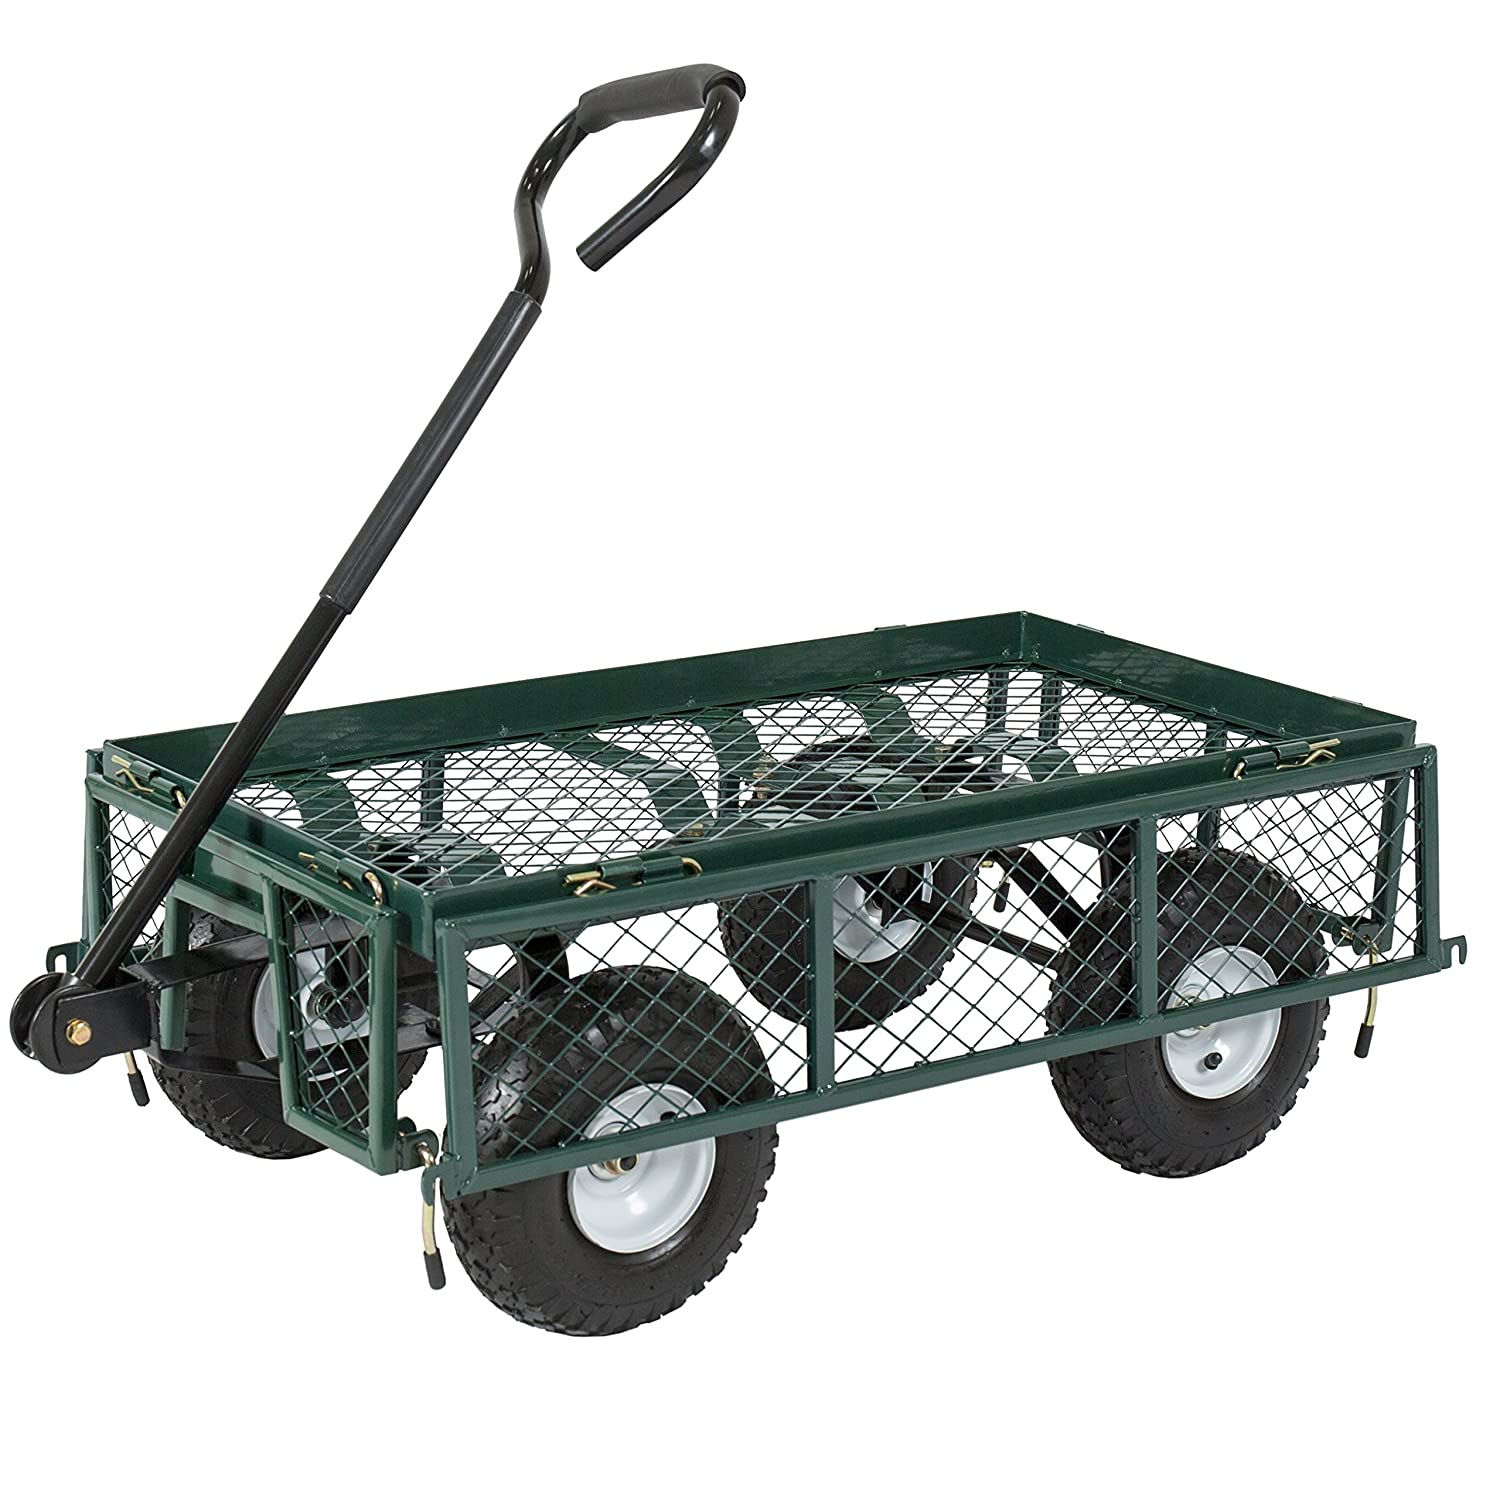 Amazon.com : Best Choice Products Utility Cart Wagon Lawn ...